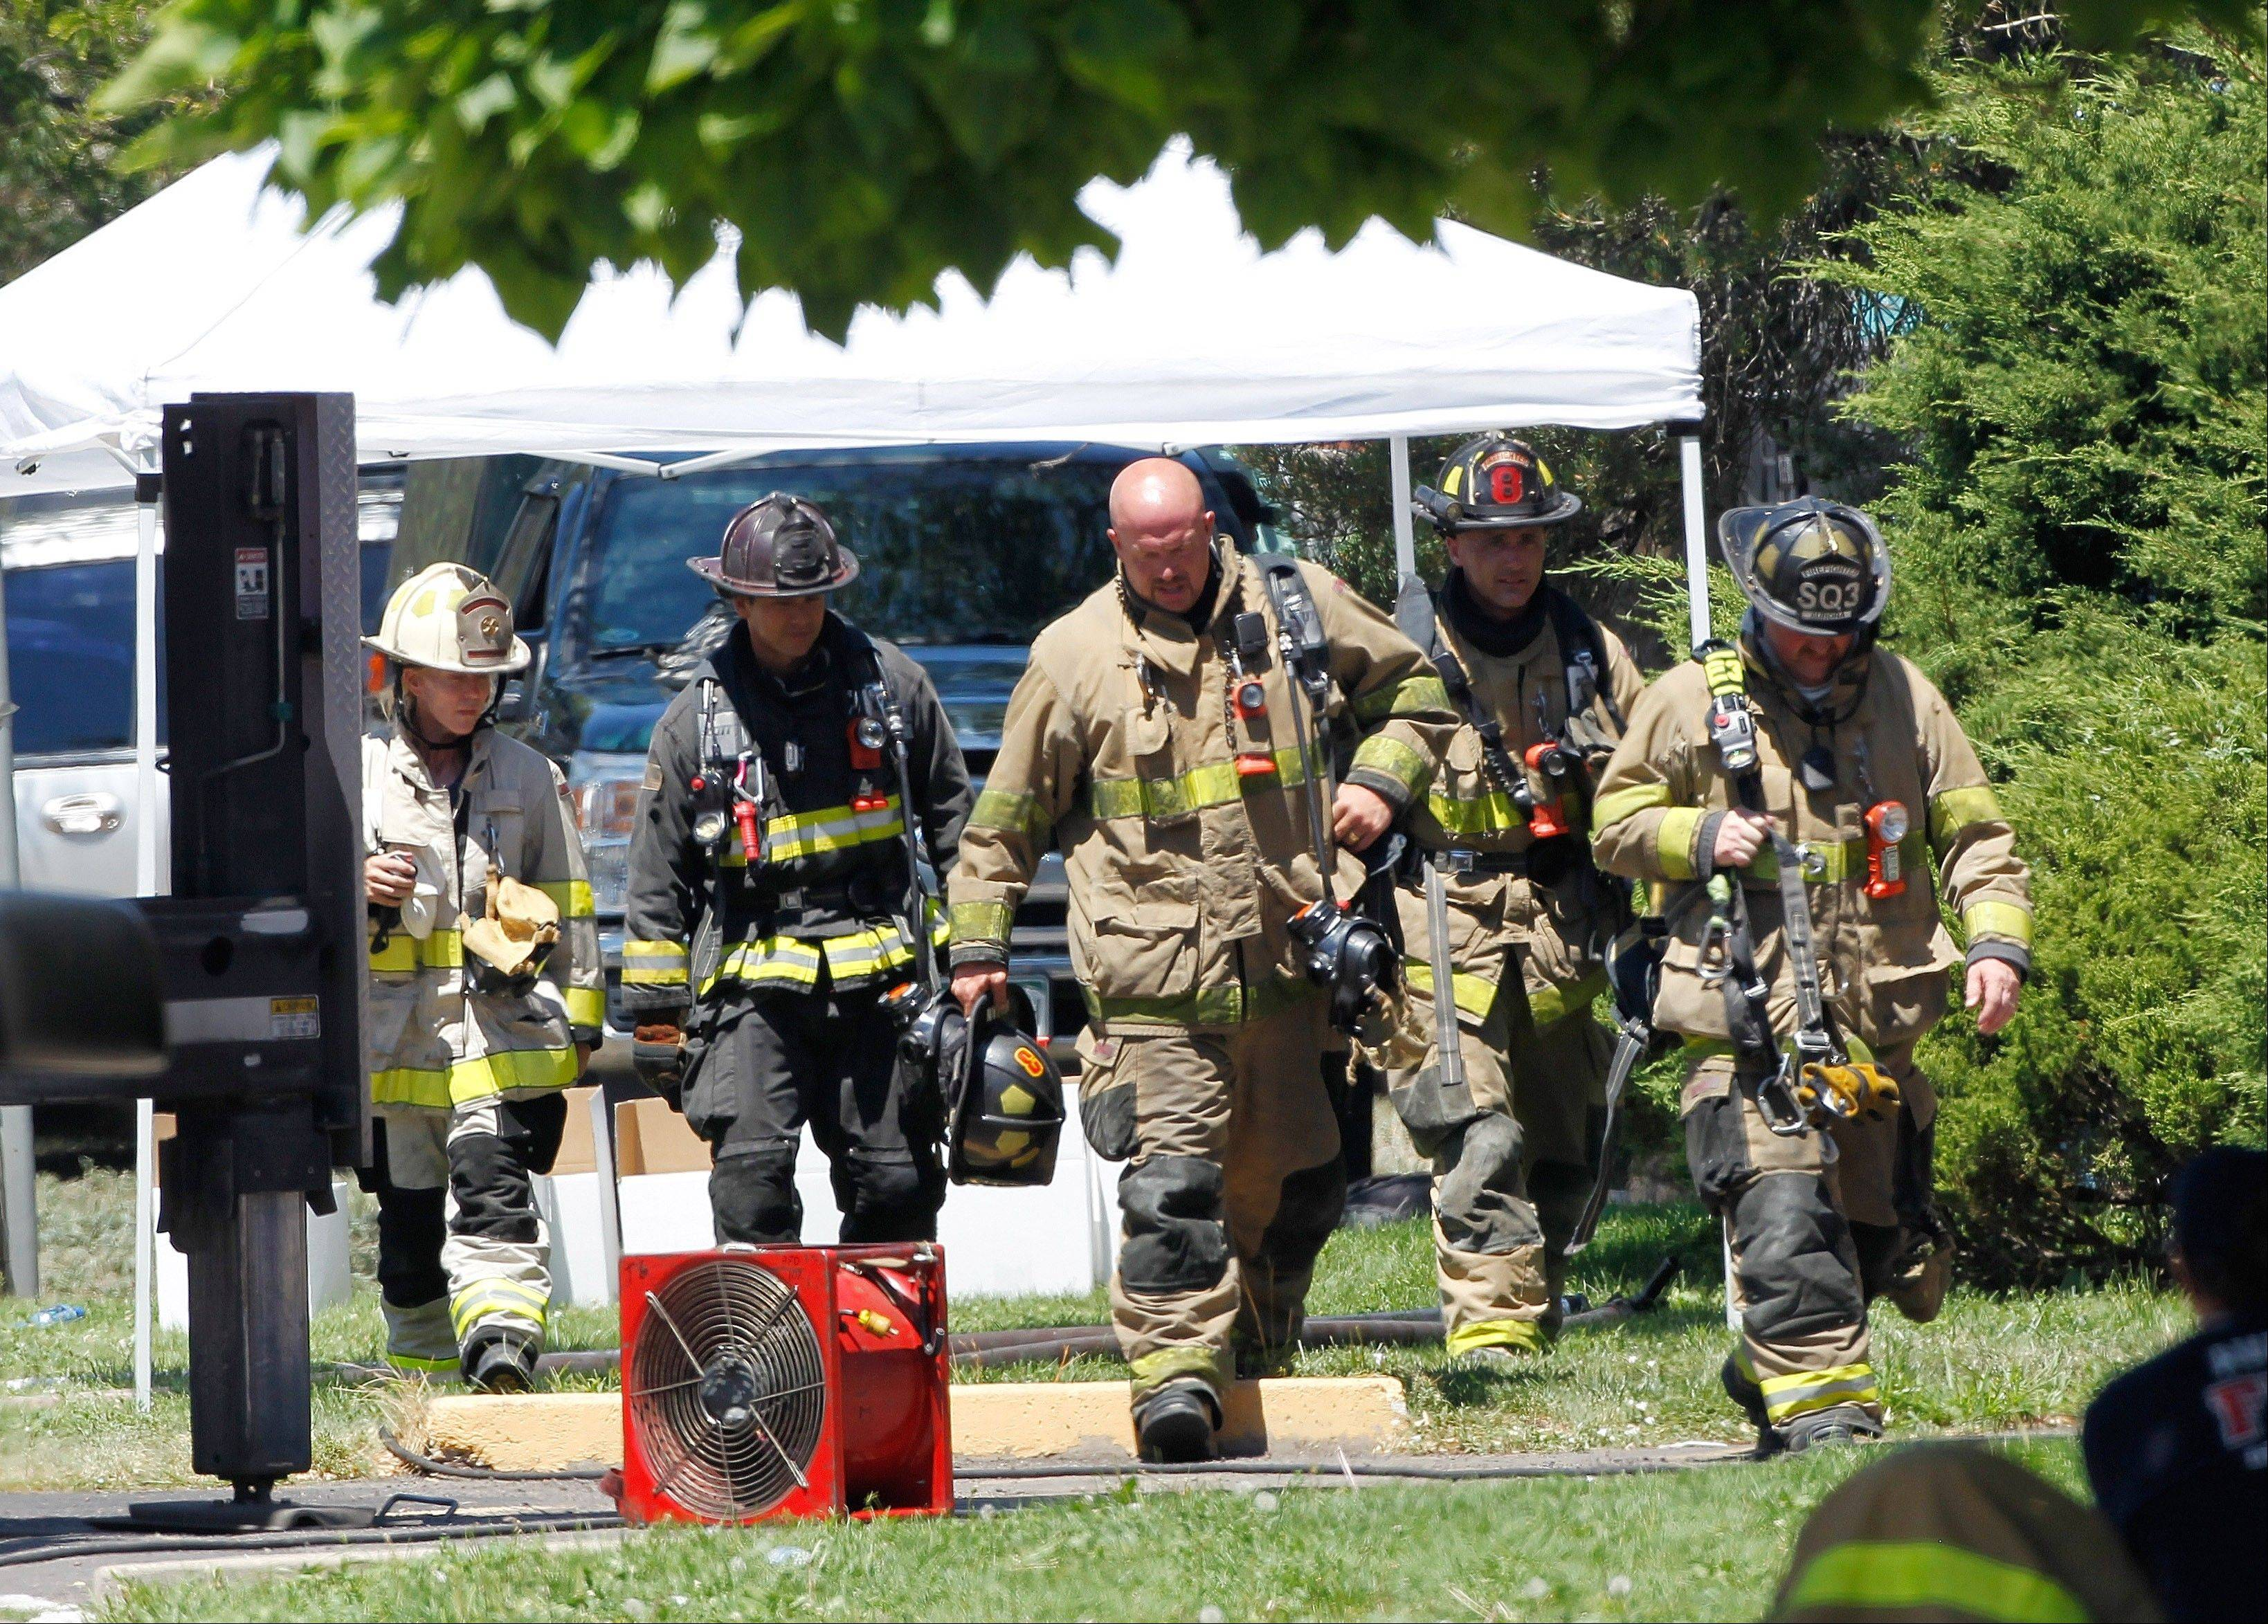 Firefighters walk to shade Saturday as temperatures neared 100 degrees, at the booby trapped apartment of James Eagen Holmes, who police have identified as the suspect in the deadly shooting at a crowded movie theater a day earlier.